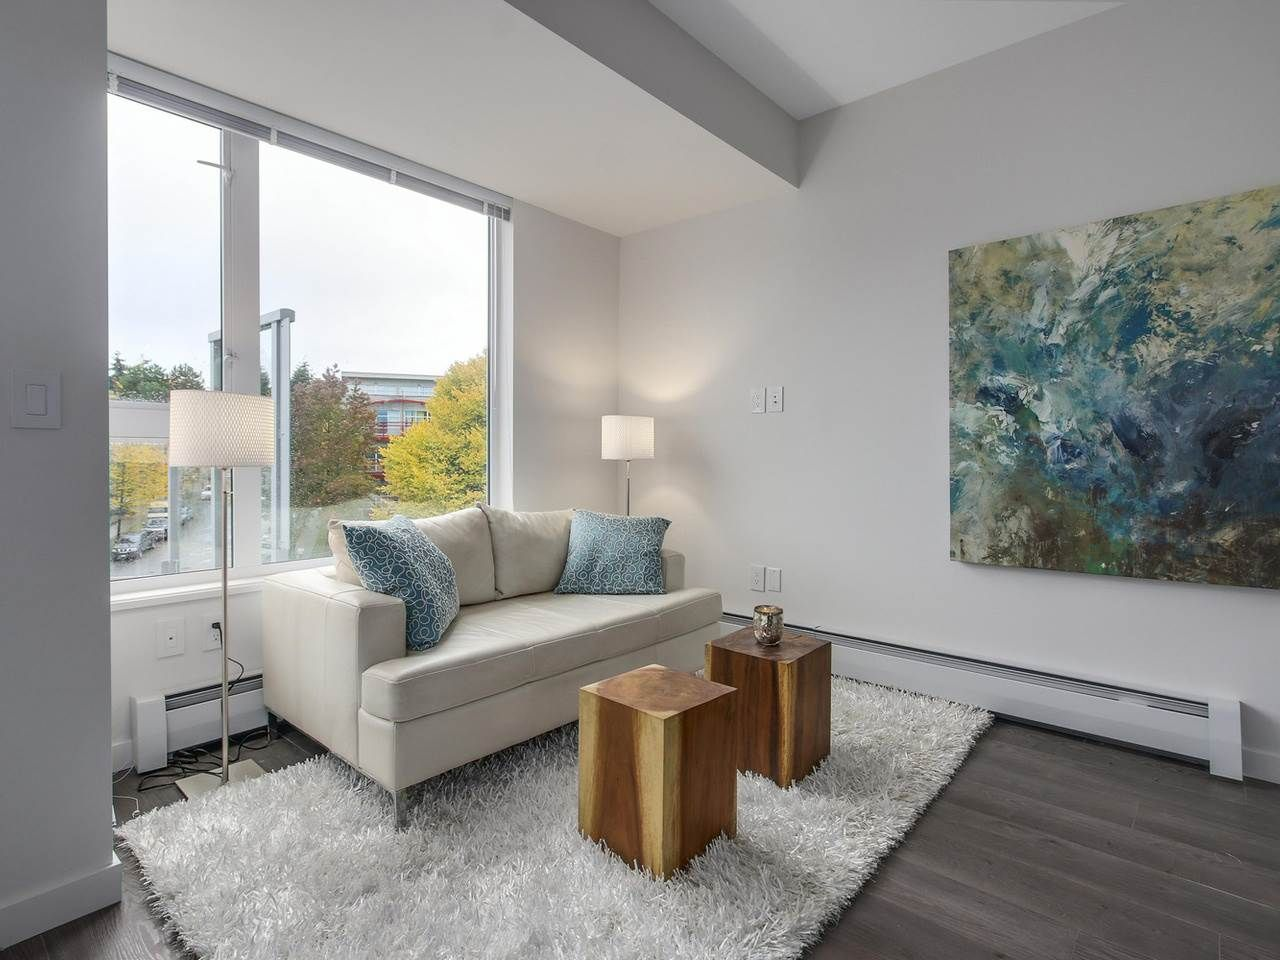 """Photo 2: Photos: 604 417 GREAT NORTHERN Way in Vancouver: Mount Pleasant VE Condo for sale in """"CANVAS"""" (Vancouver East)  : MLS®# R2118078"""